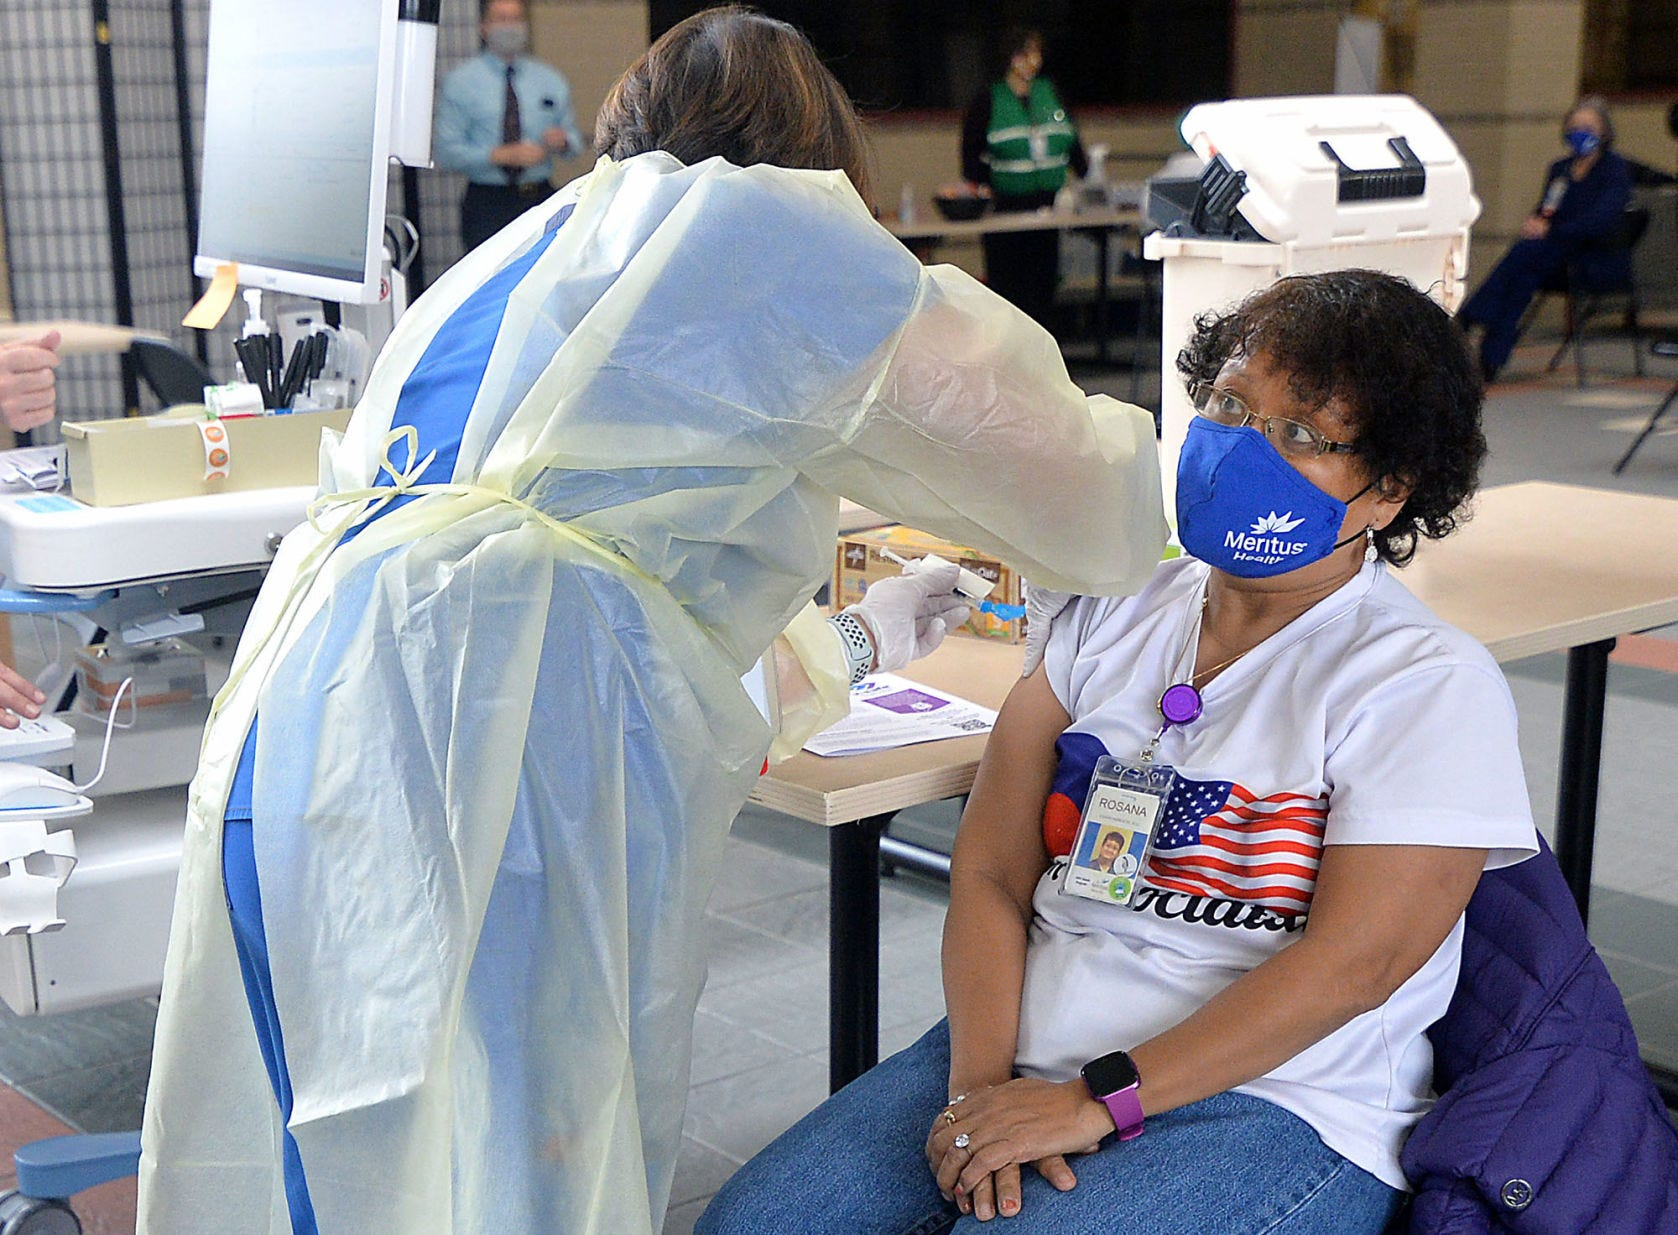 In December 2020, Rosana Bresette, environmental services team at Meritus Medical Center in Hagerstown, Maryland, is the third to receive the COVID-19 vaccine at Robinwood Professional Center. Annie Correces, a school health nurse redeployed to help with the vaccine clinics, administers the vaccine.